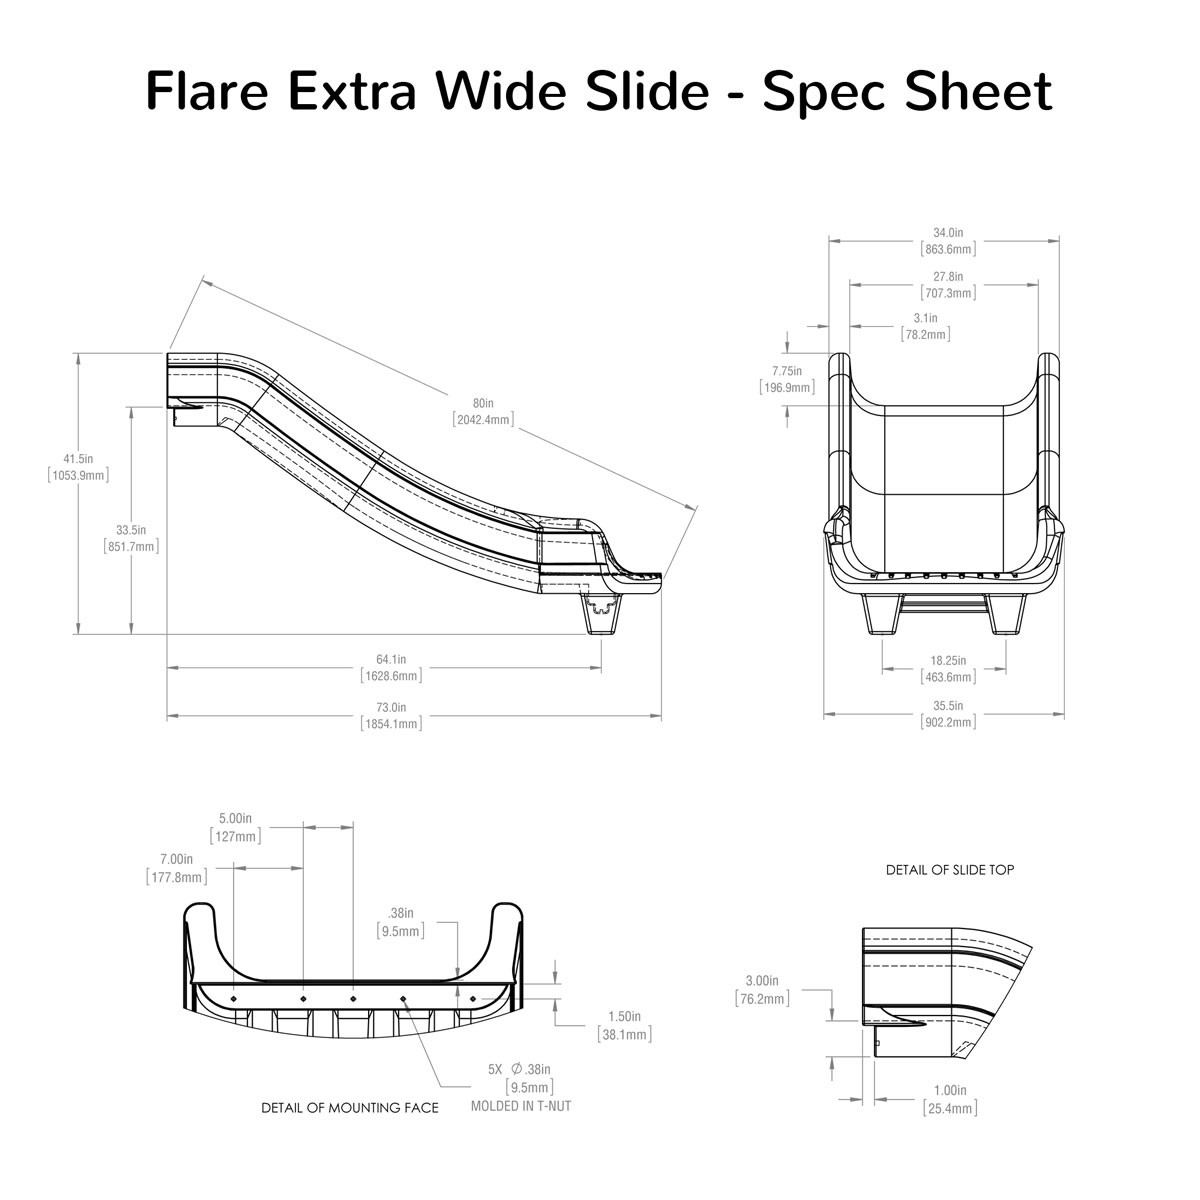 Flare Extra Wide Slide Spec Sheet